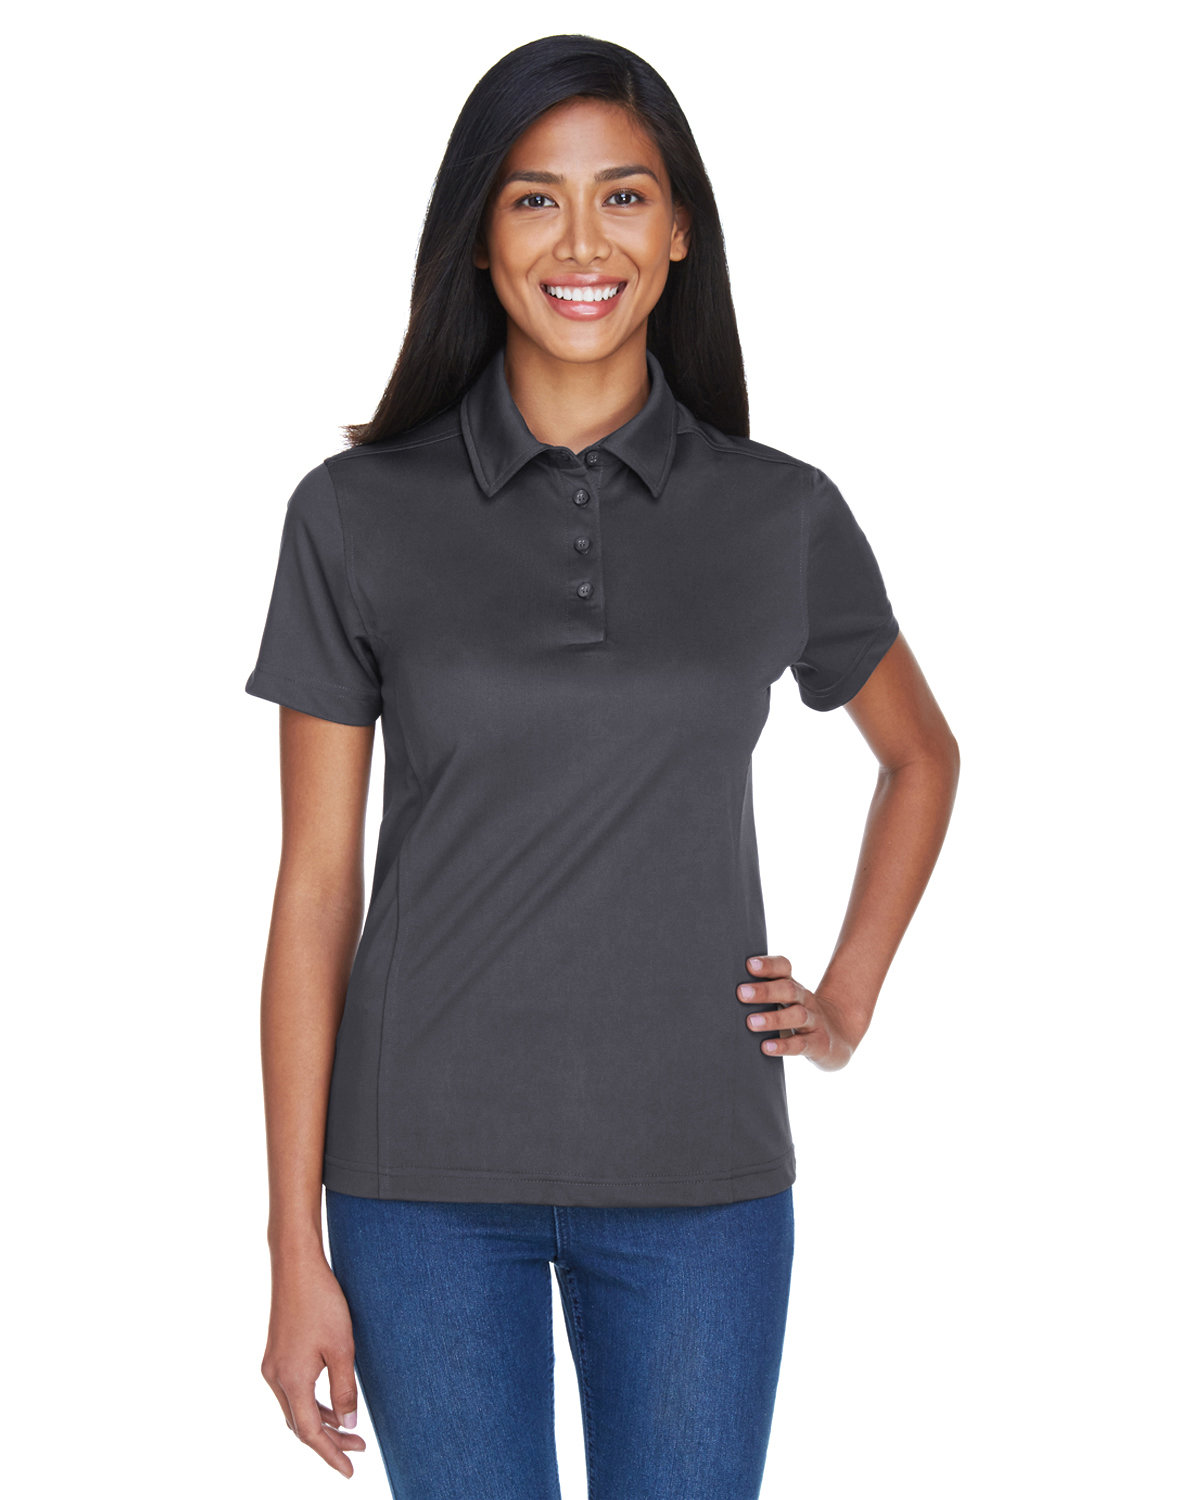 Extreme Ladies' Eperformance™ Shift Snag Protection Plus Polo CARBON